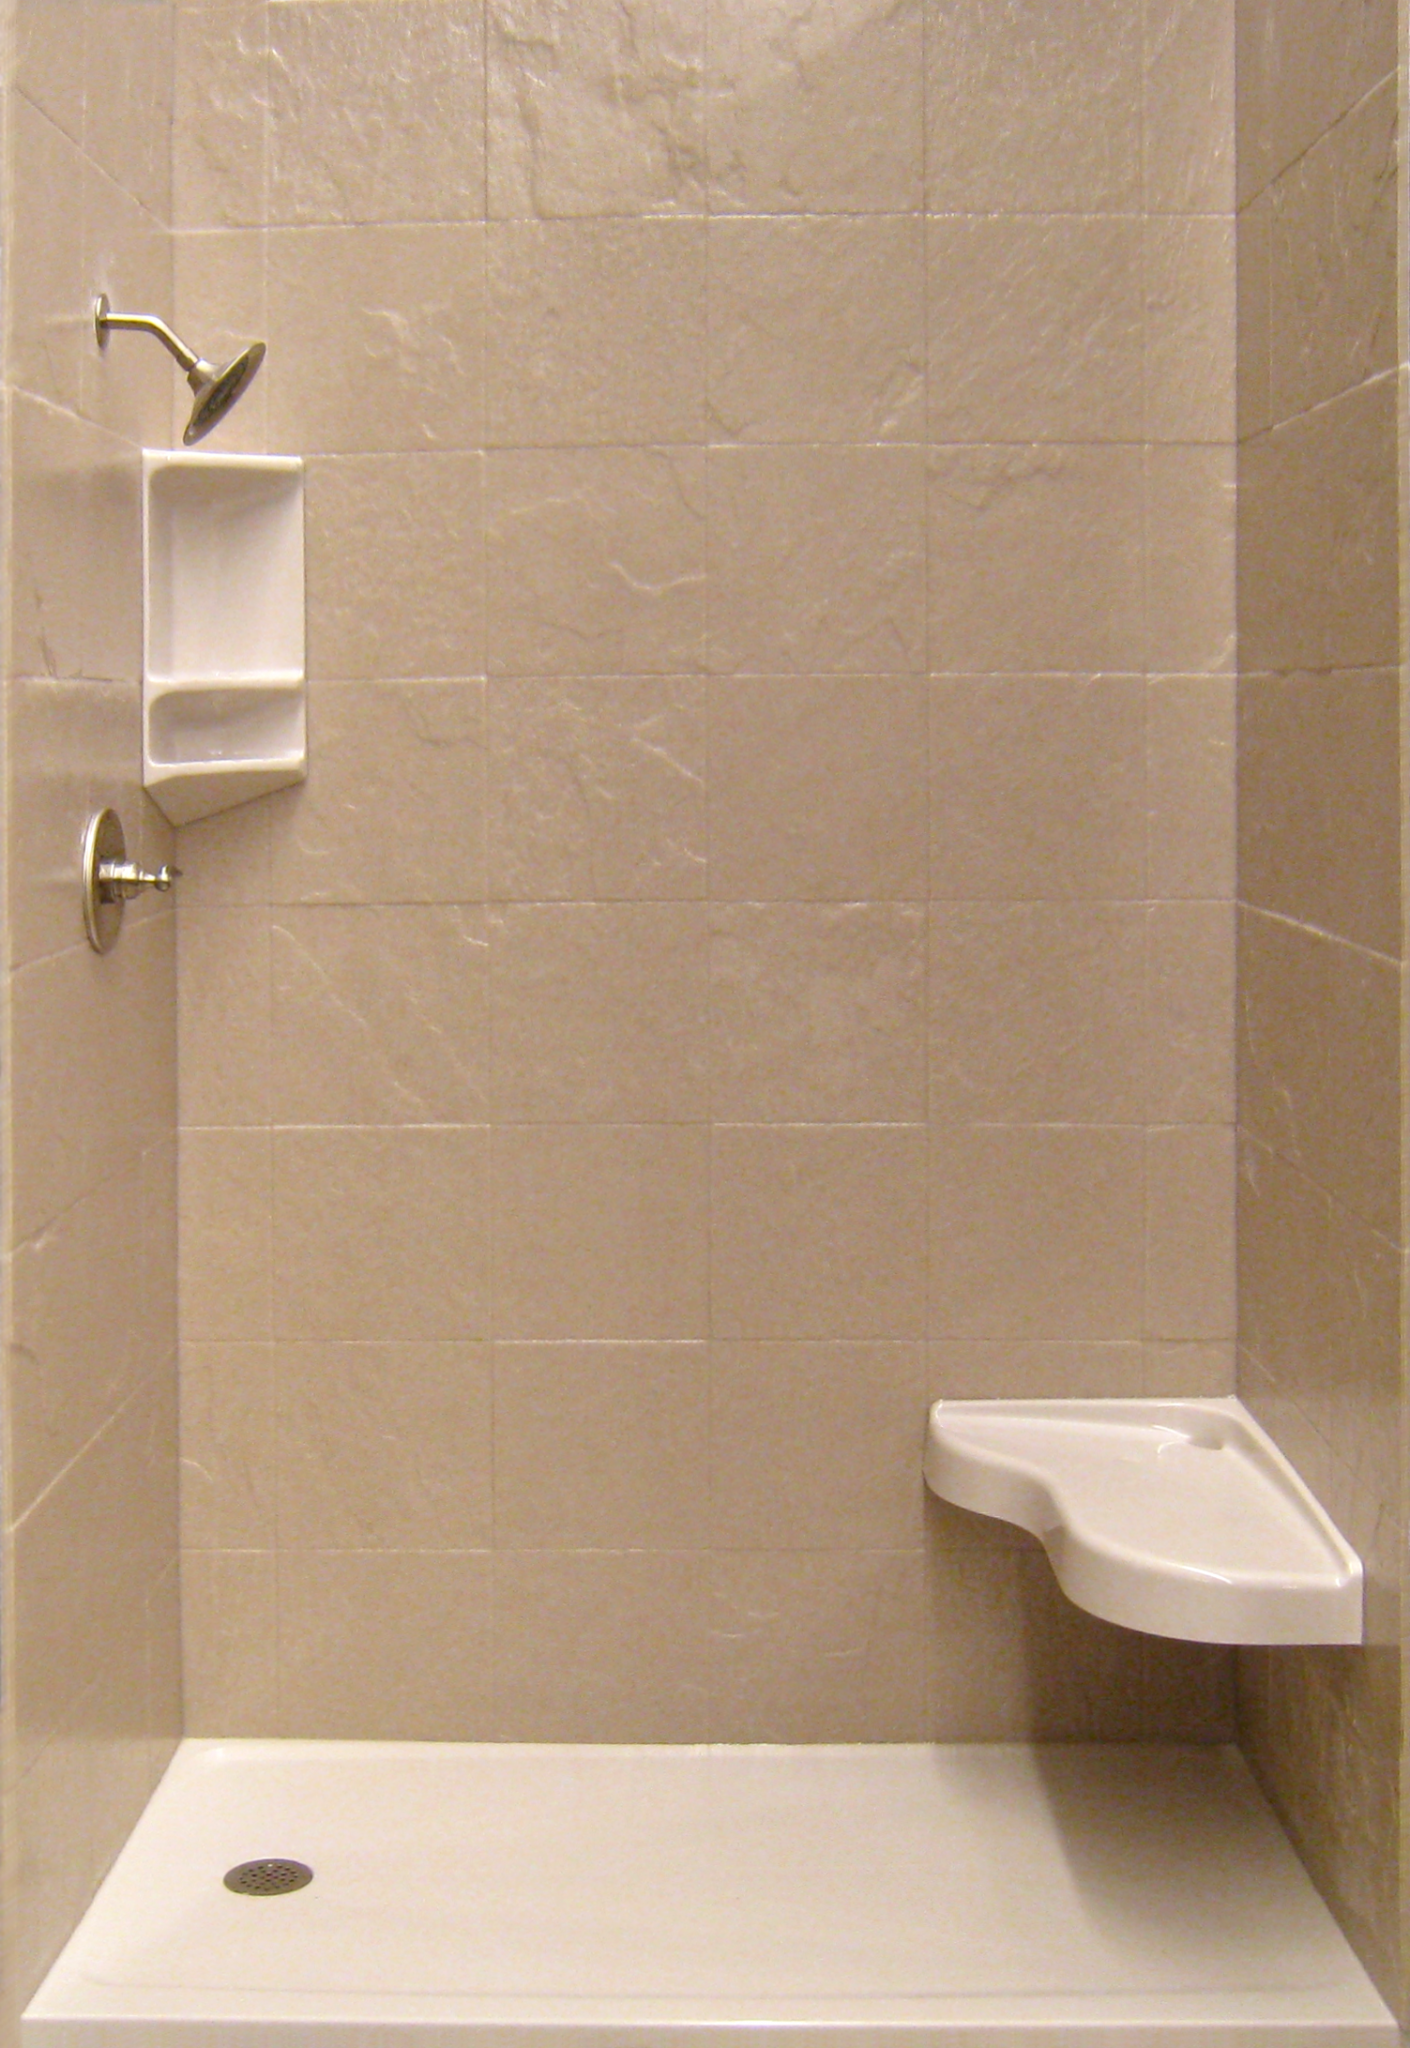 Bathroom Remodeling: Building A Better Bathroom With The